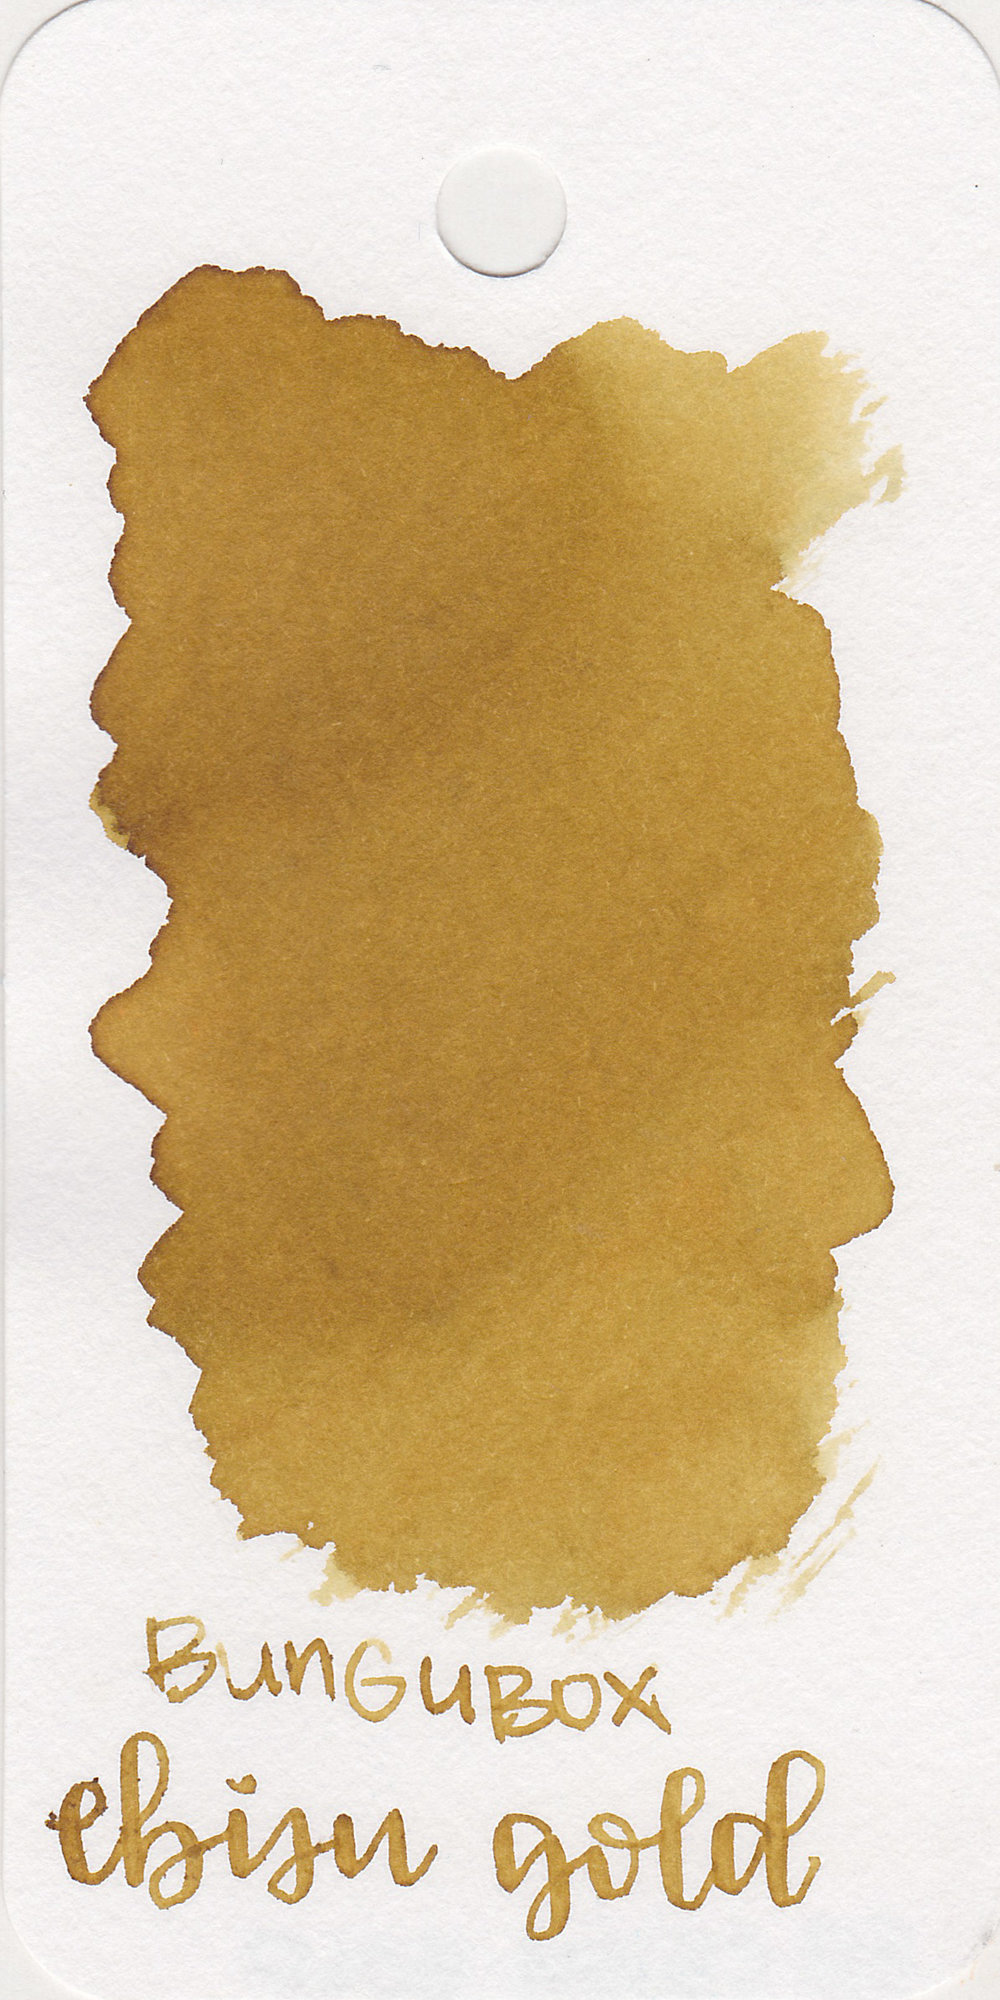 The color: - Ebisu Gold is a cool-tone dark yellow.